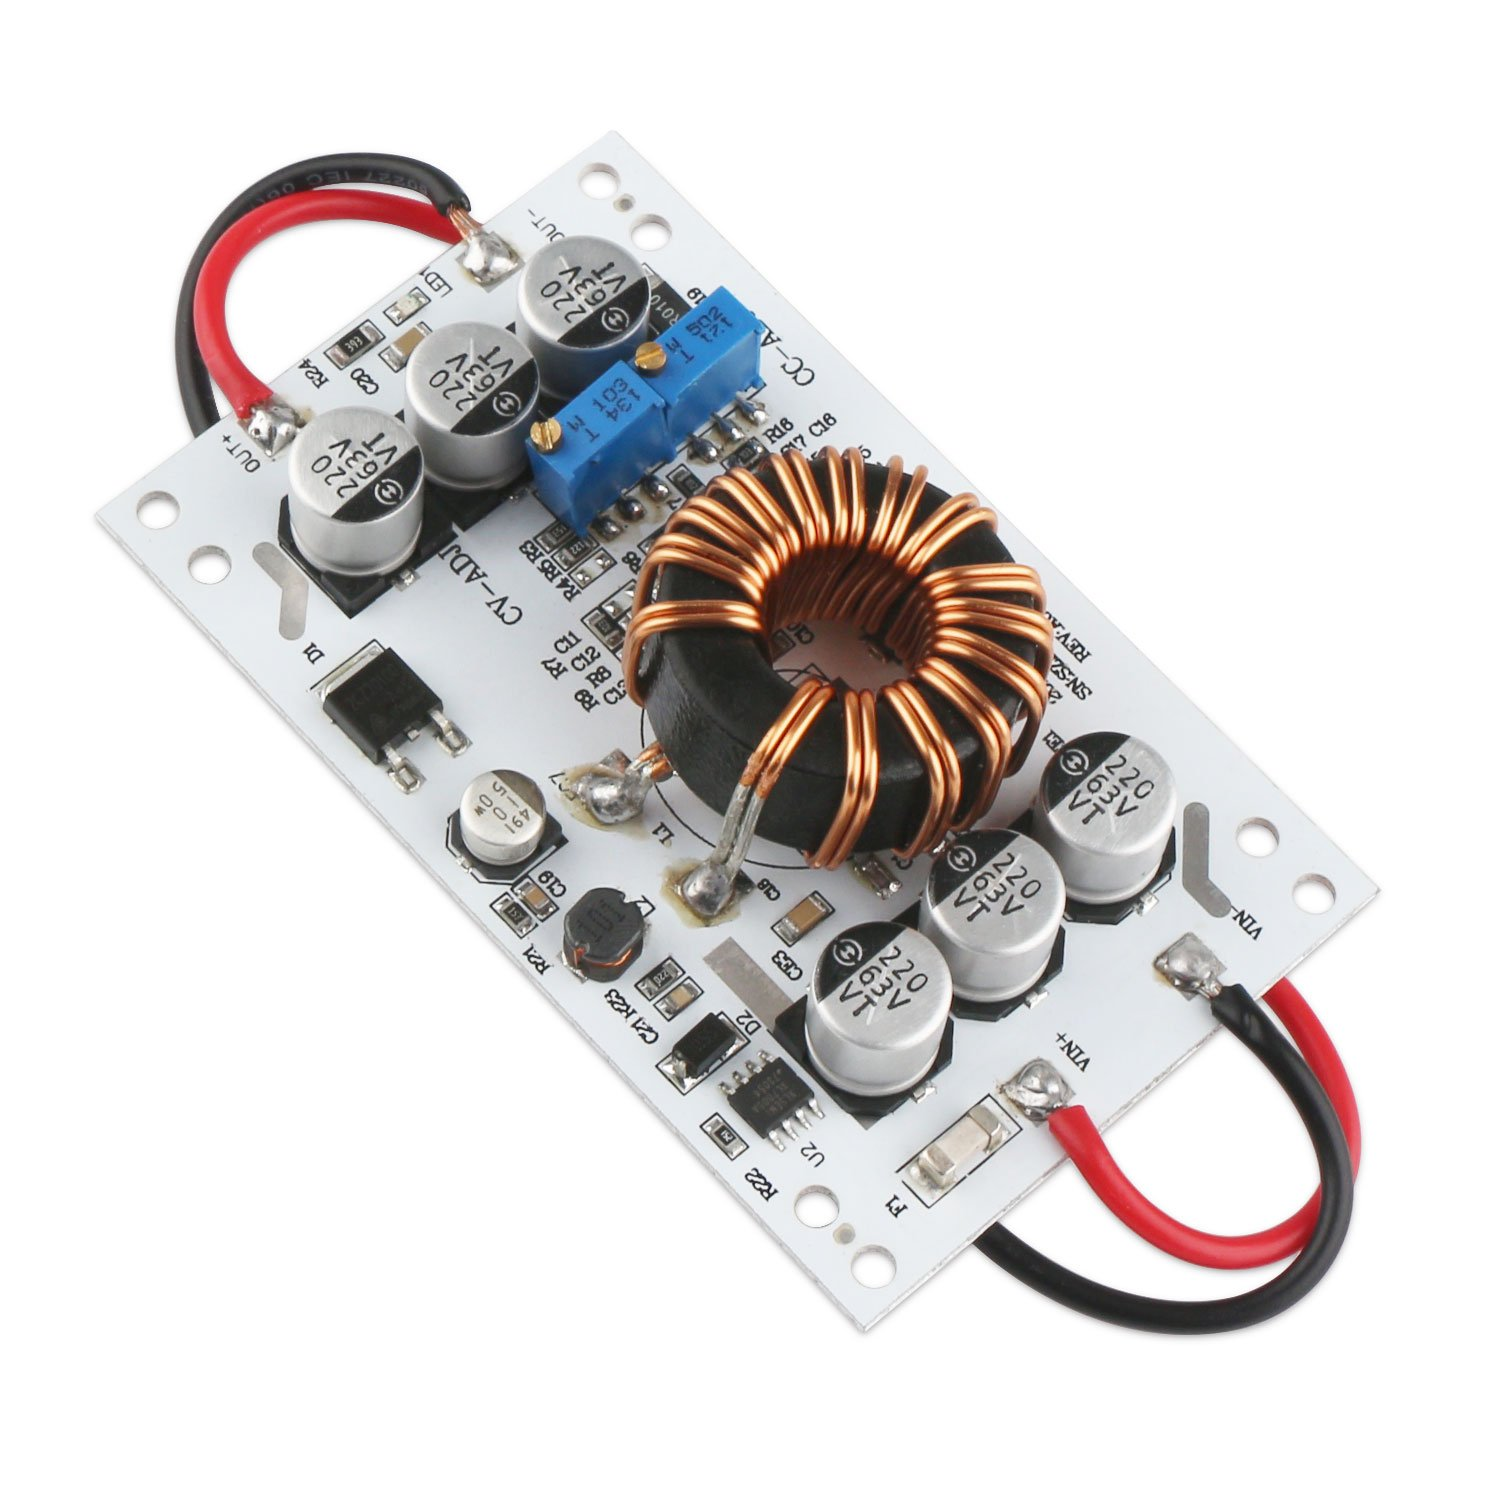 DC Boost Converter, DROK Voltage Step Up Converter Board 600W Non-isolated Power Transformer Module 10V-60V 12V Step-up to 12V-60V 24V 10A CC CV Volt Regulator by DROK (Image #7)